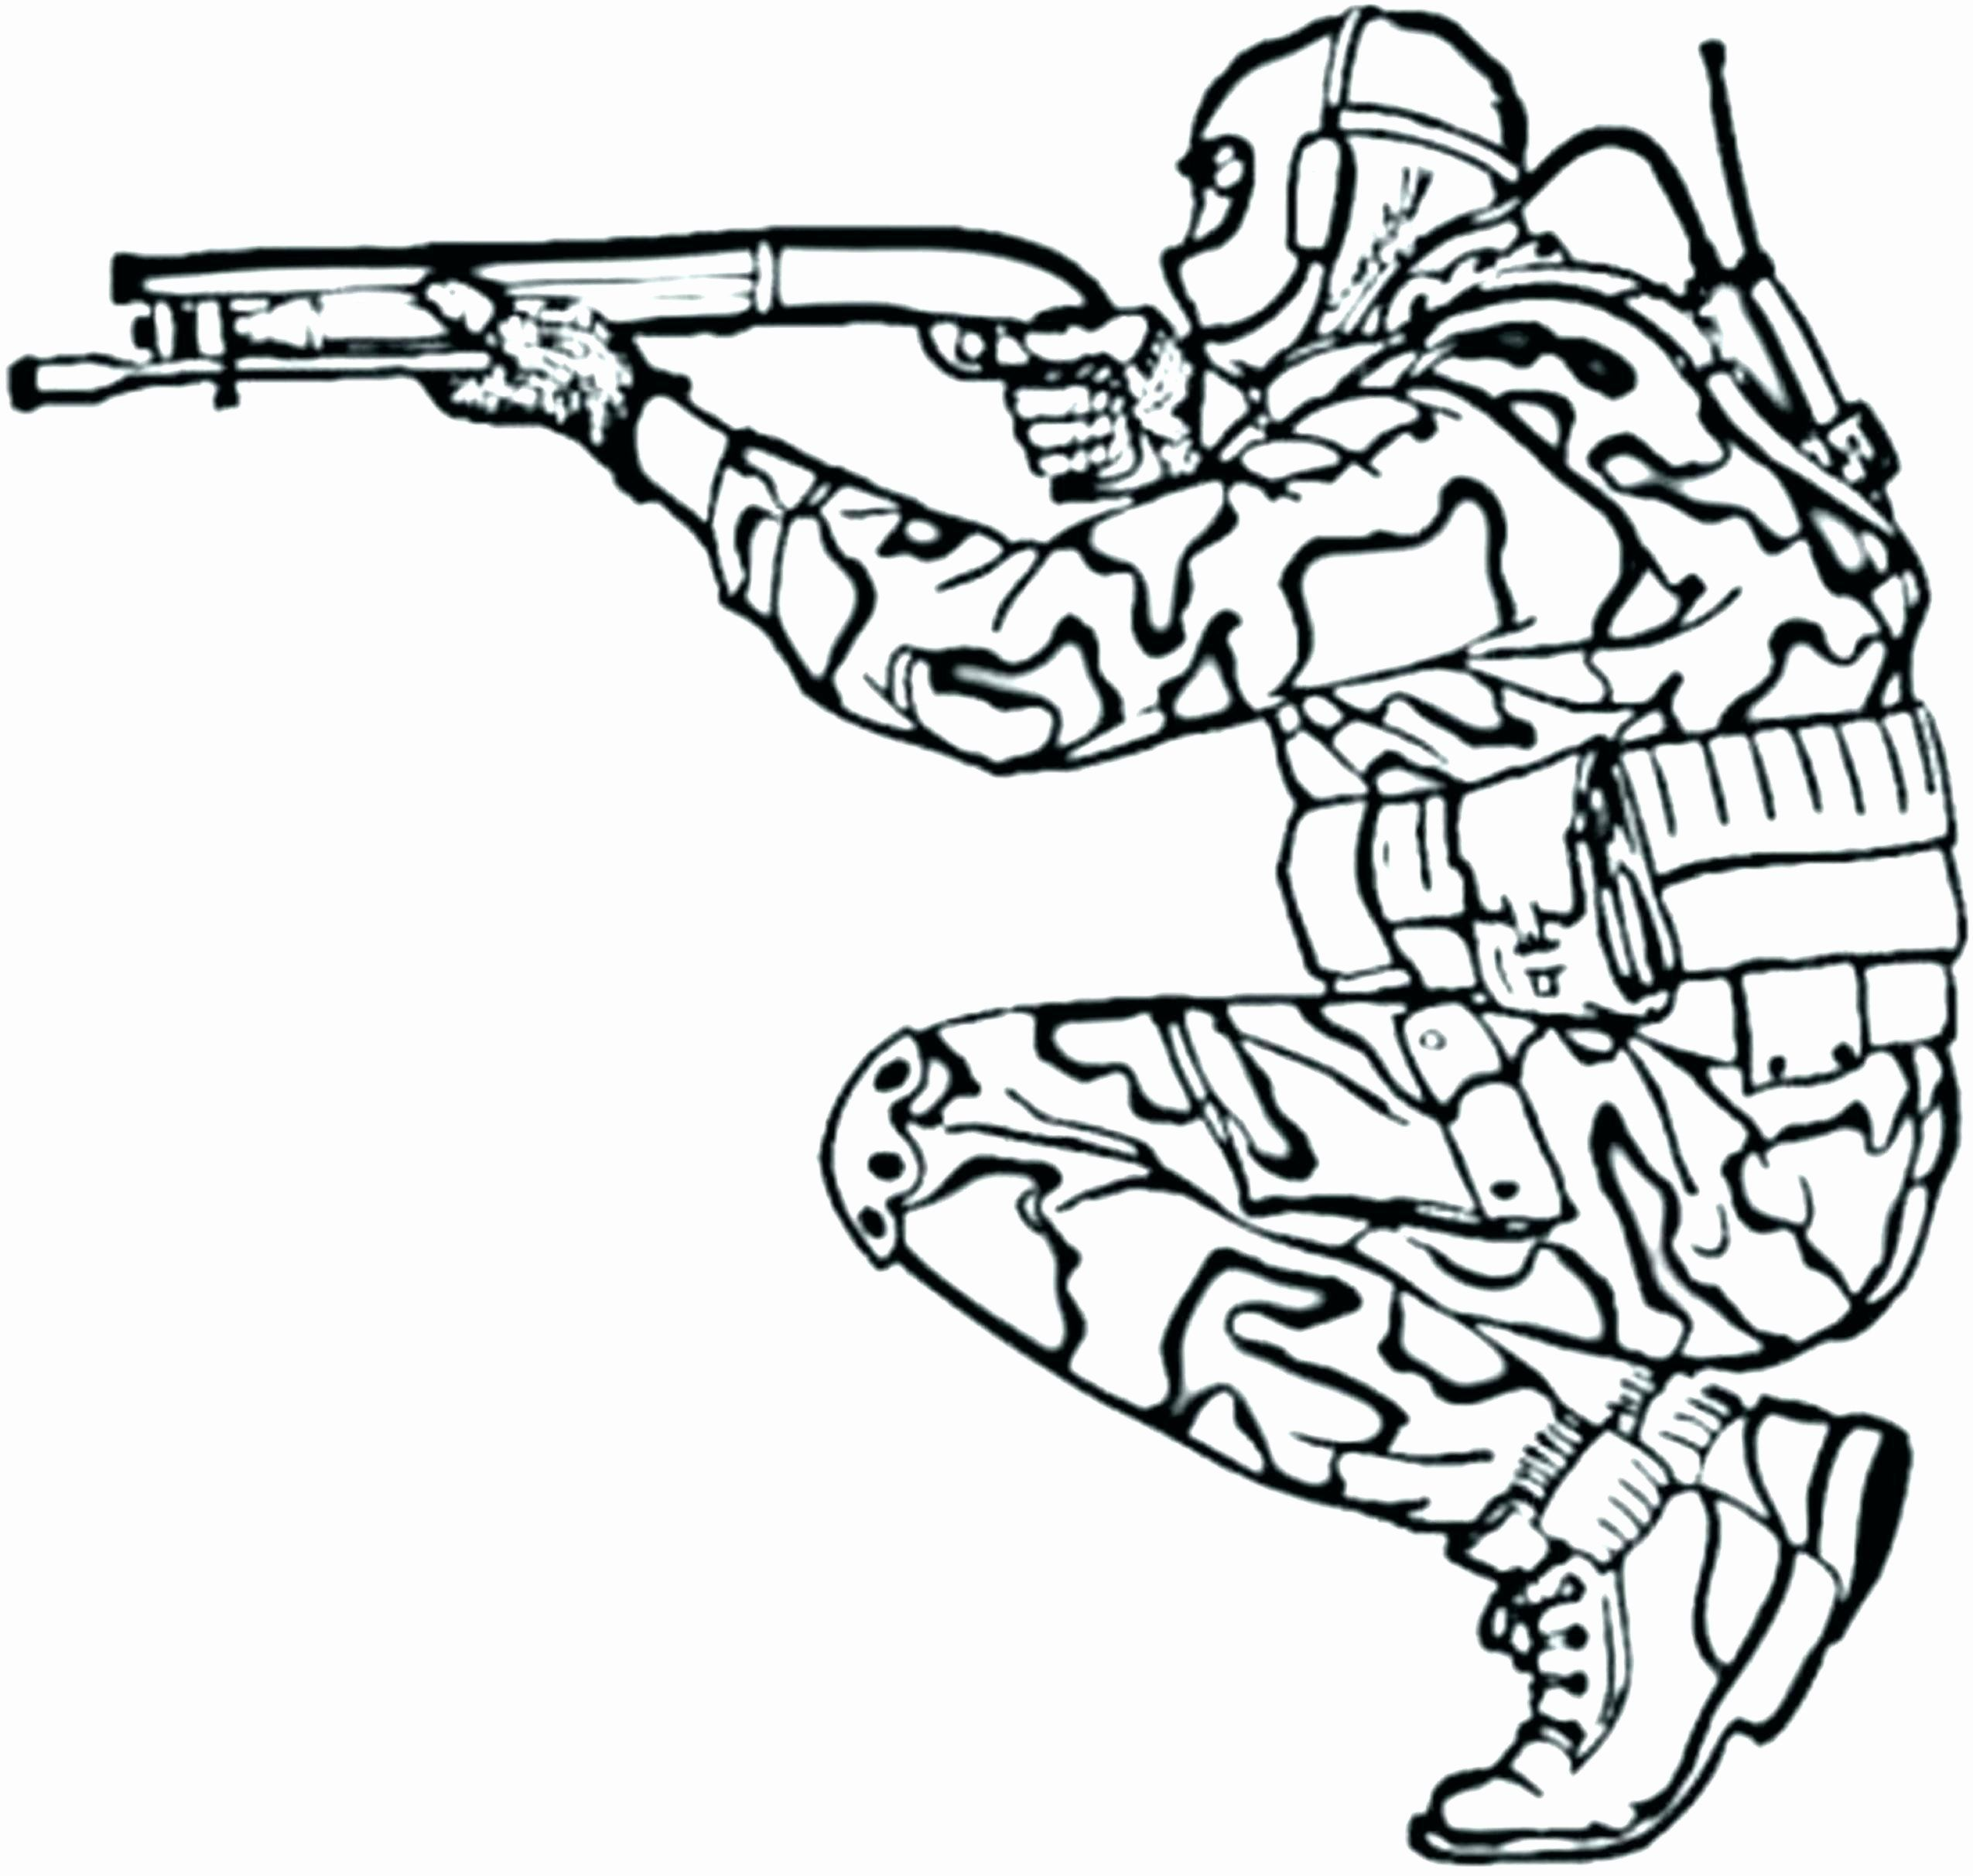 Military Aircraft Coloring Pages Elegant Us Air Force Coloring Pages Tedpaper Cars Coloring Pages Free Coloring Pages Coloring Pages For Boys